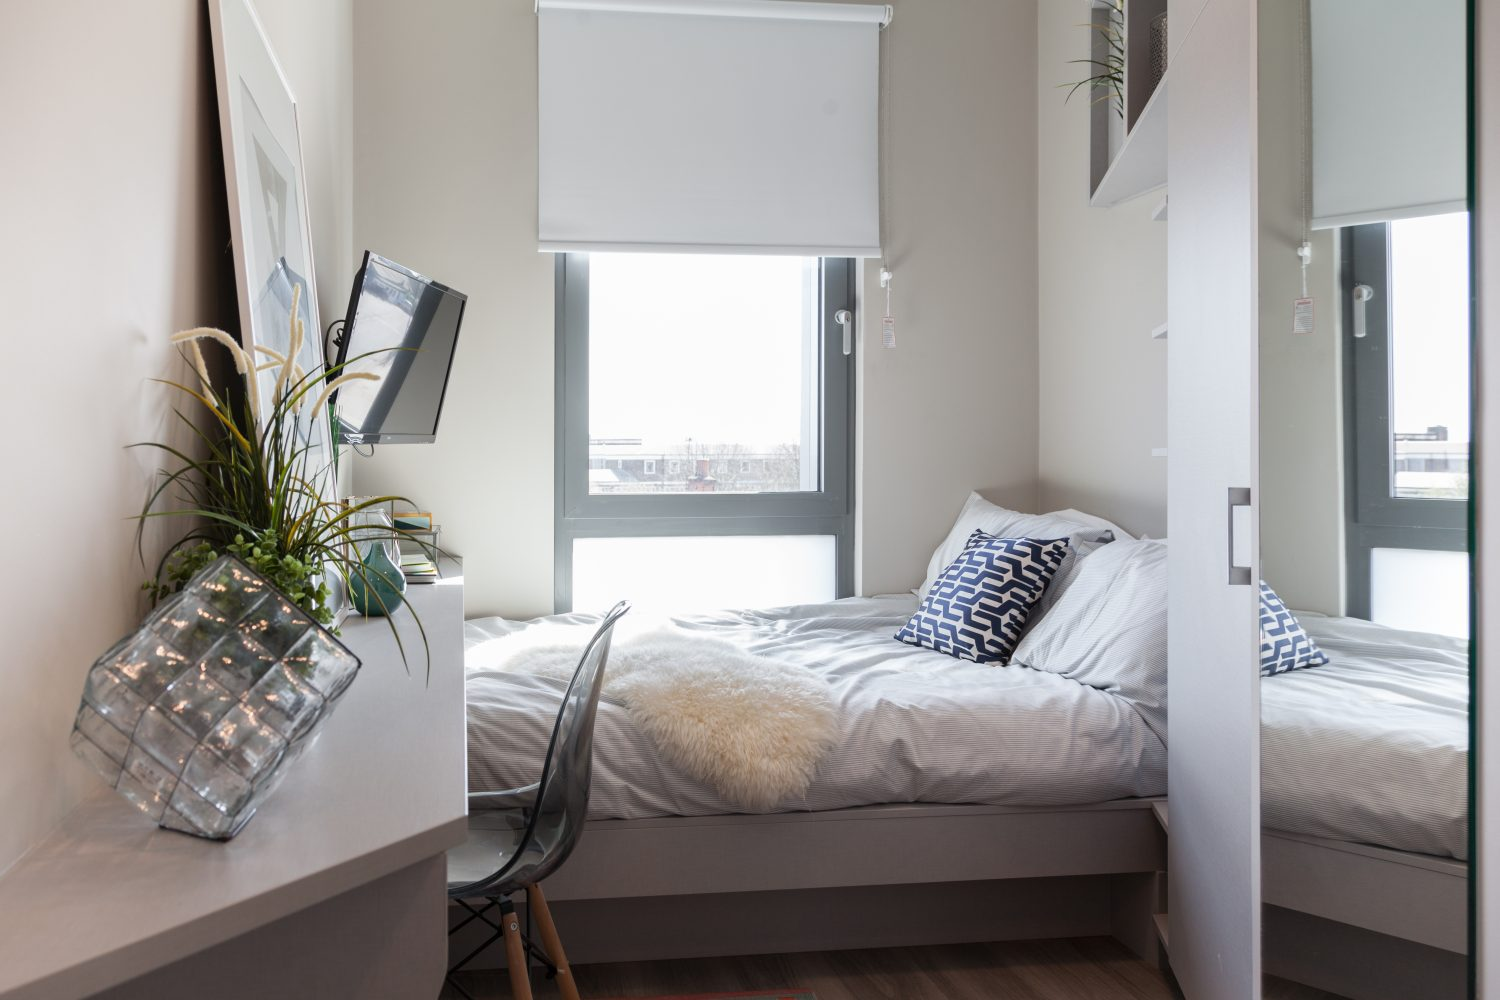 Studio apartment co-living at the Collective Old Oak